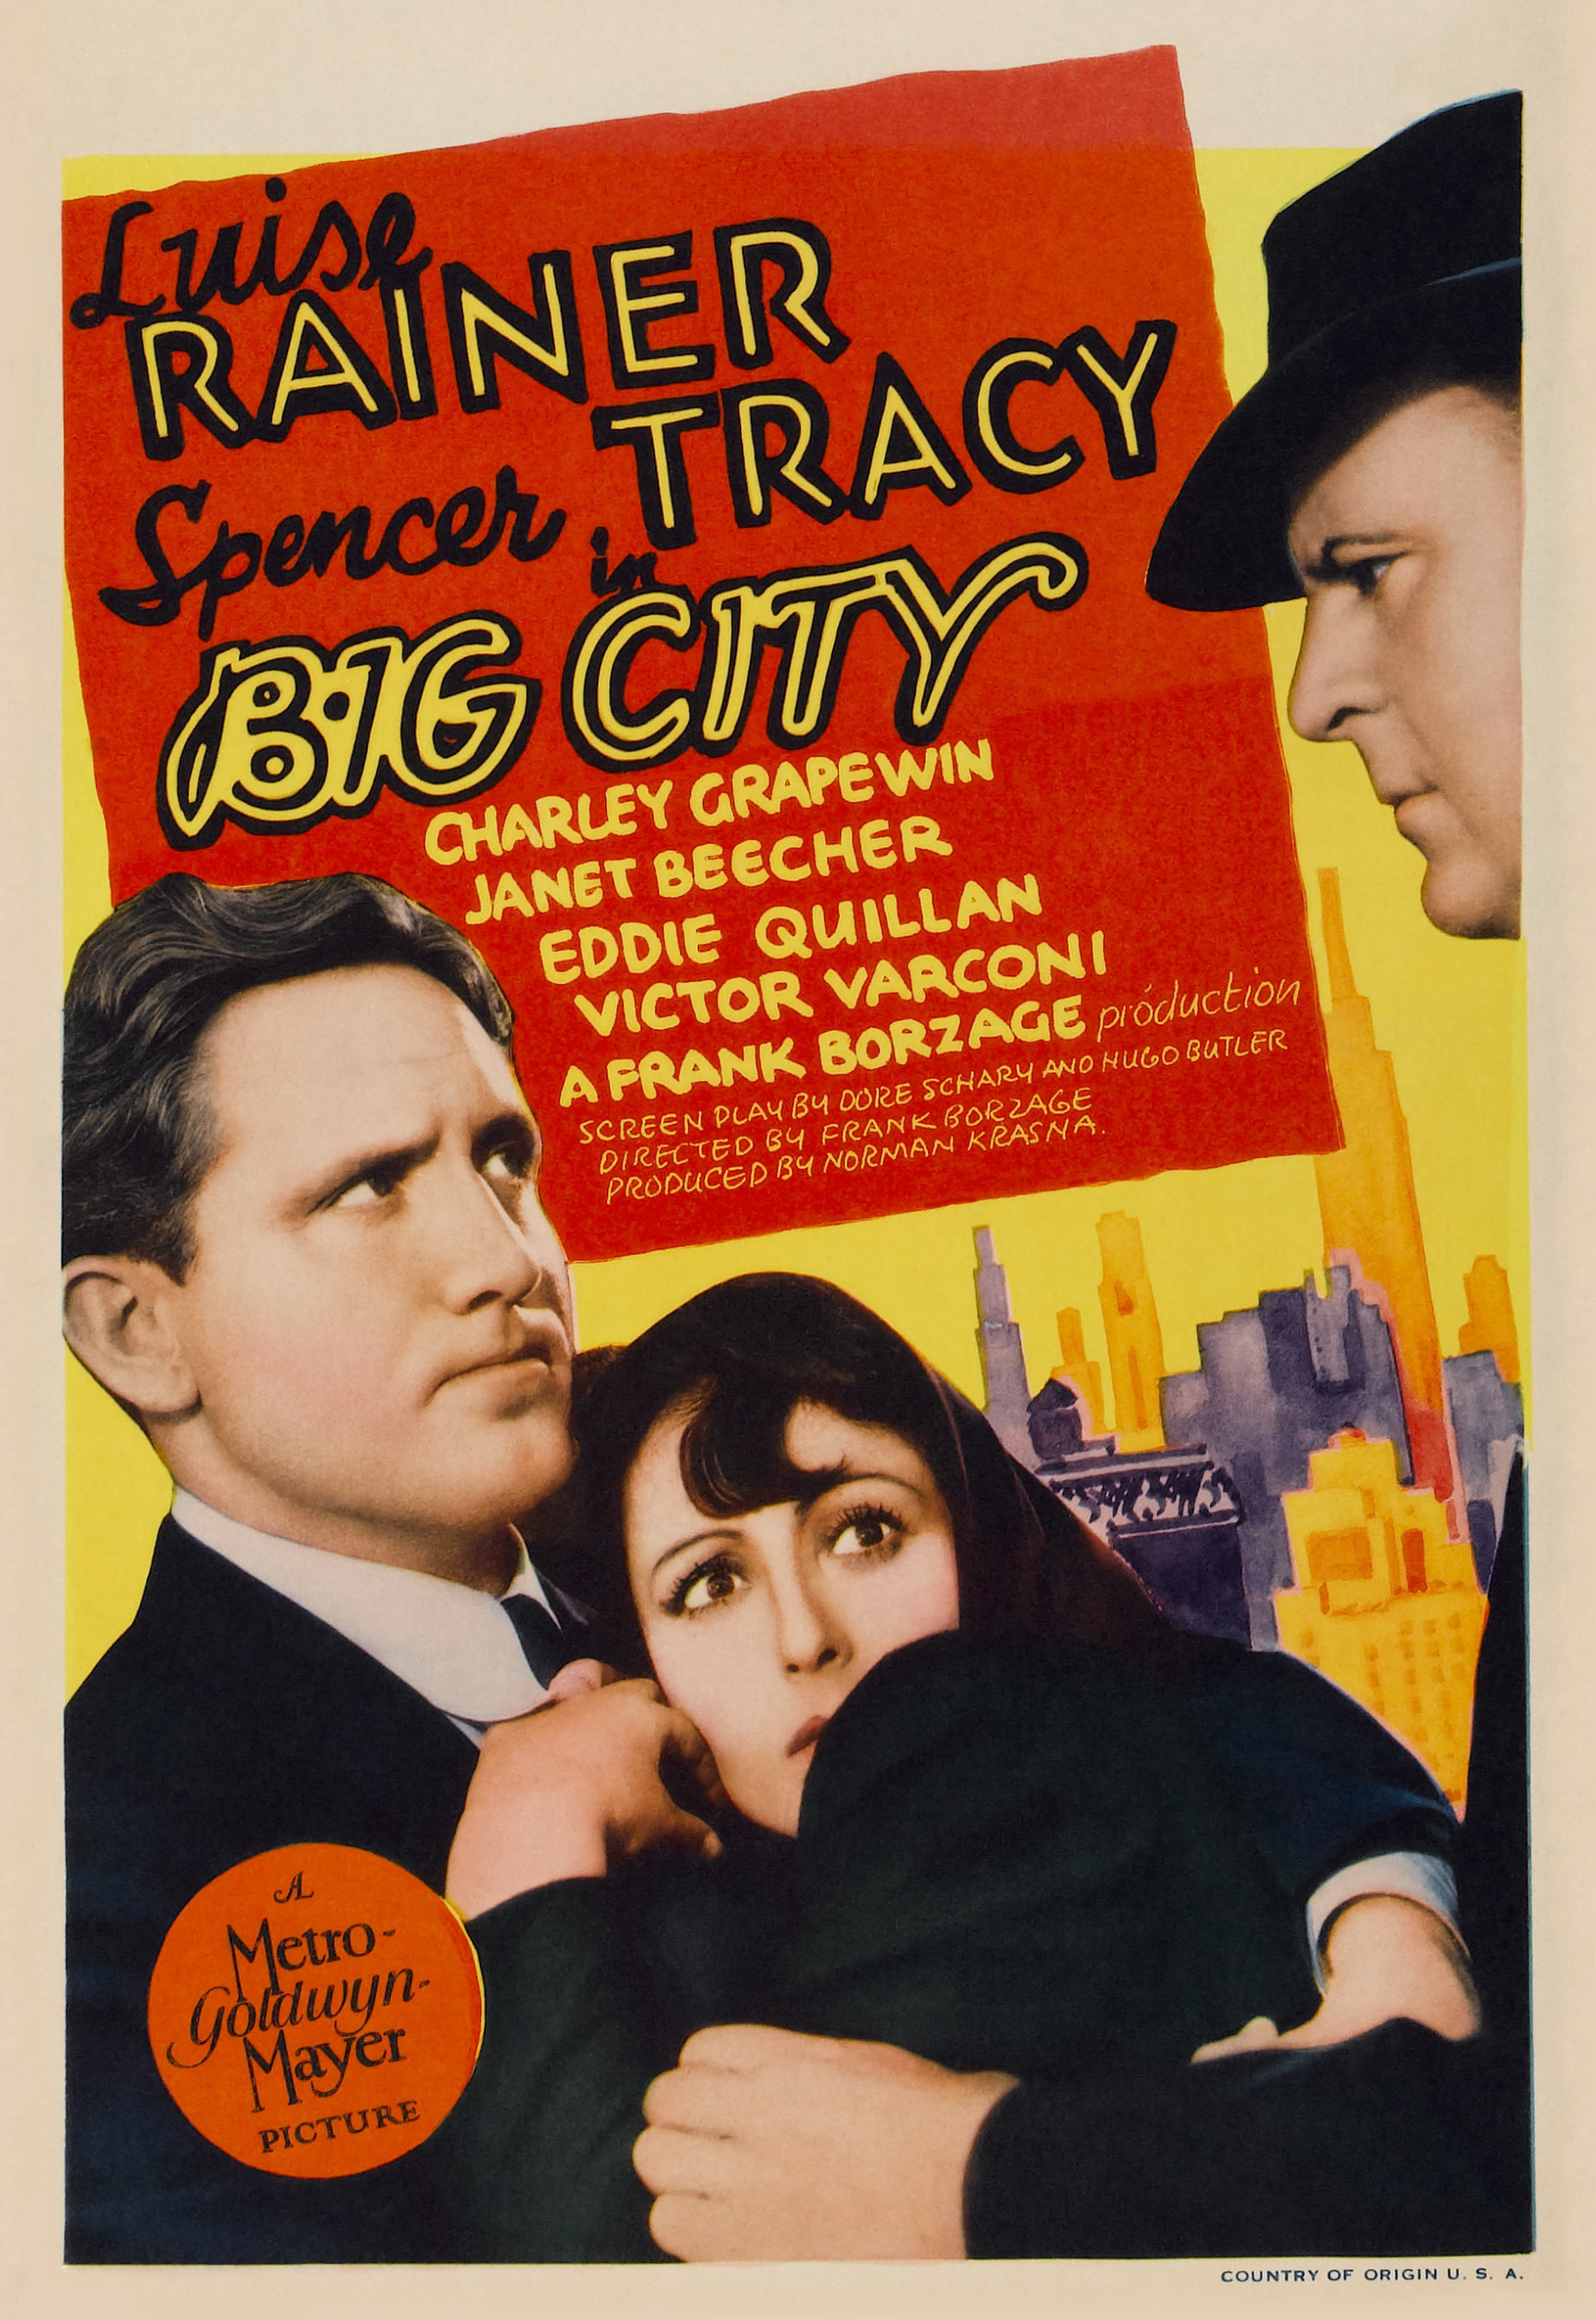 Spencer Tracy, Luise Rainer, and Victor Varconi in Big City (1937)